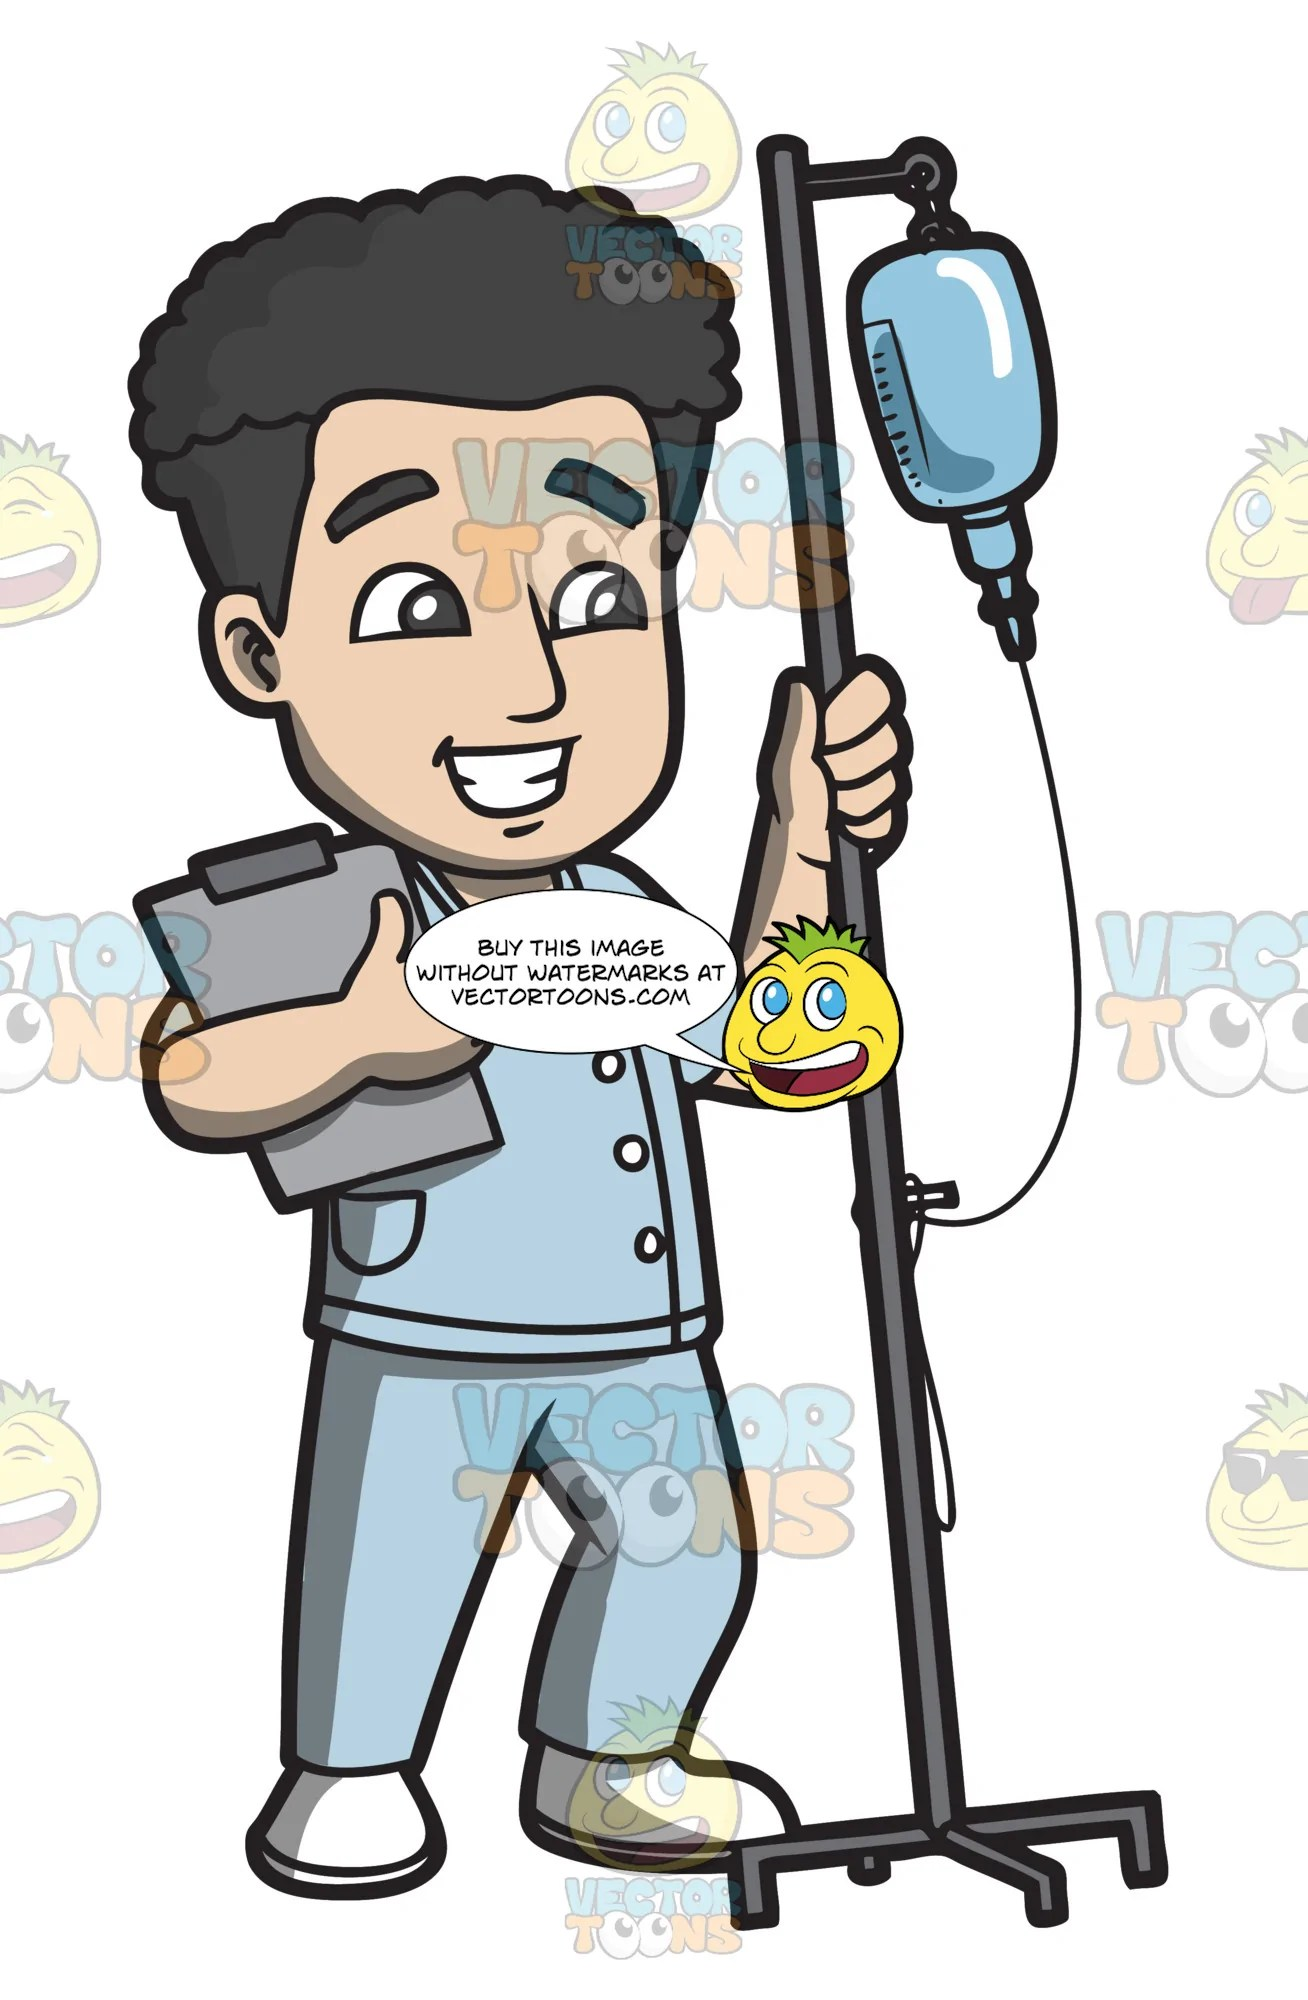 medium resolution of a male nurse carrying an intravenous fluid to a patient clipart cartoons by vectortoons